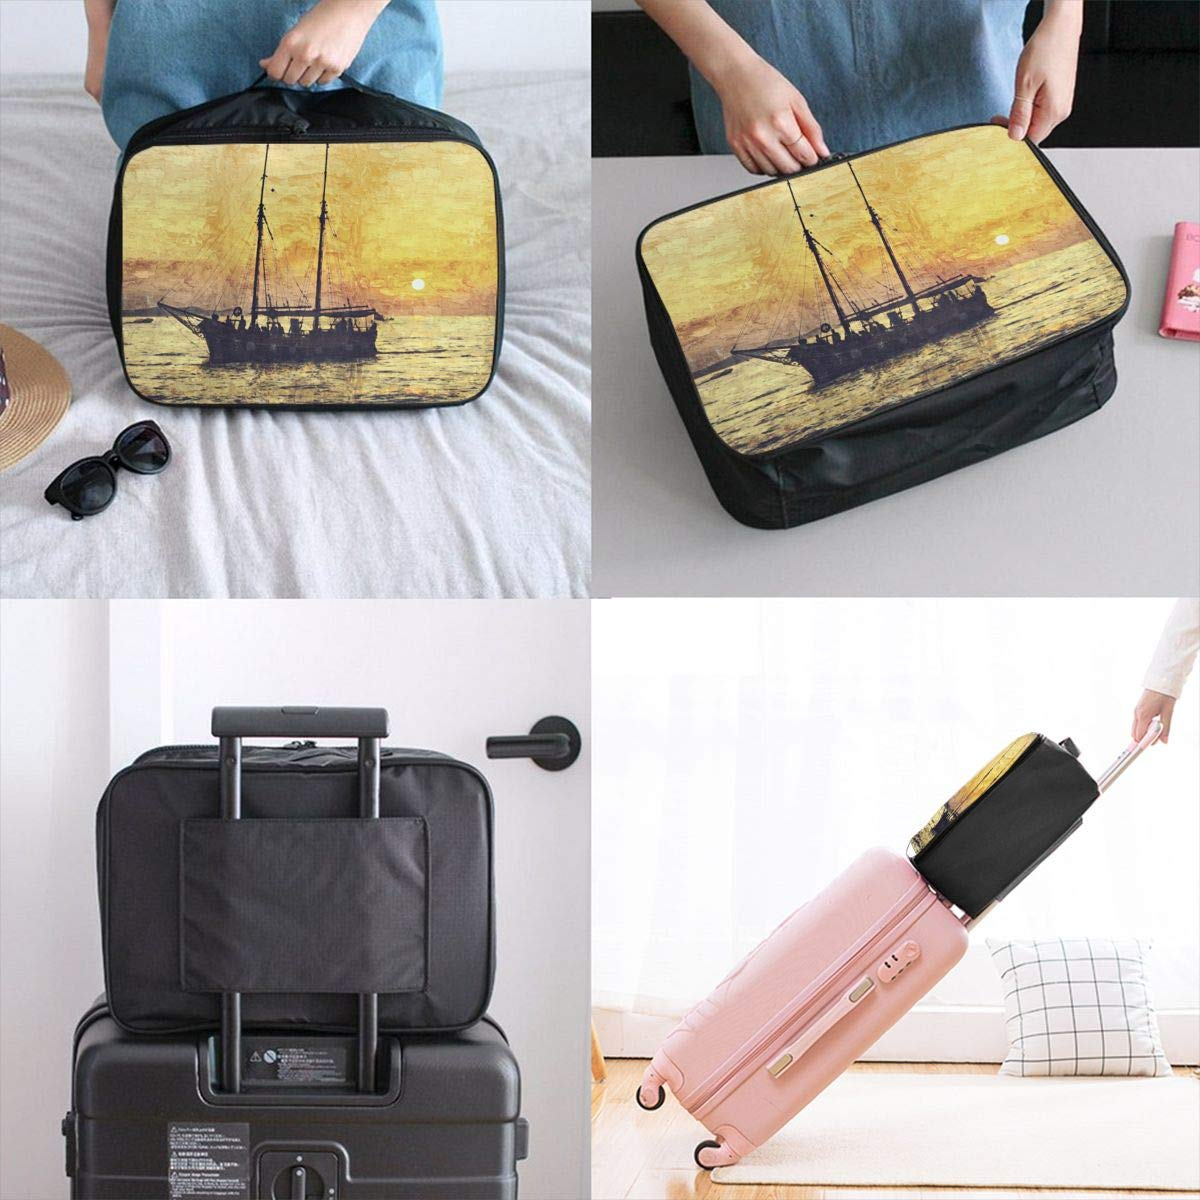 A Ship Ocean Sunset Oil Painting Travel Lightweight Waterproof Foldable Storage Carry Luggage Large Capacity Portable Luggage Bag Duffel Bag